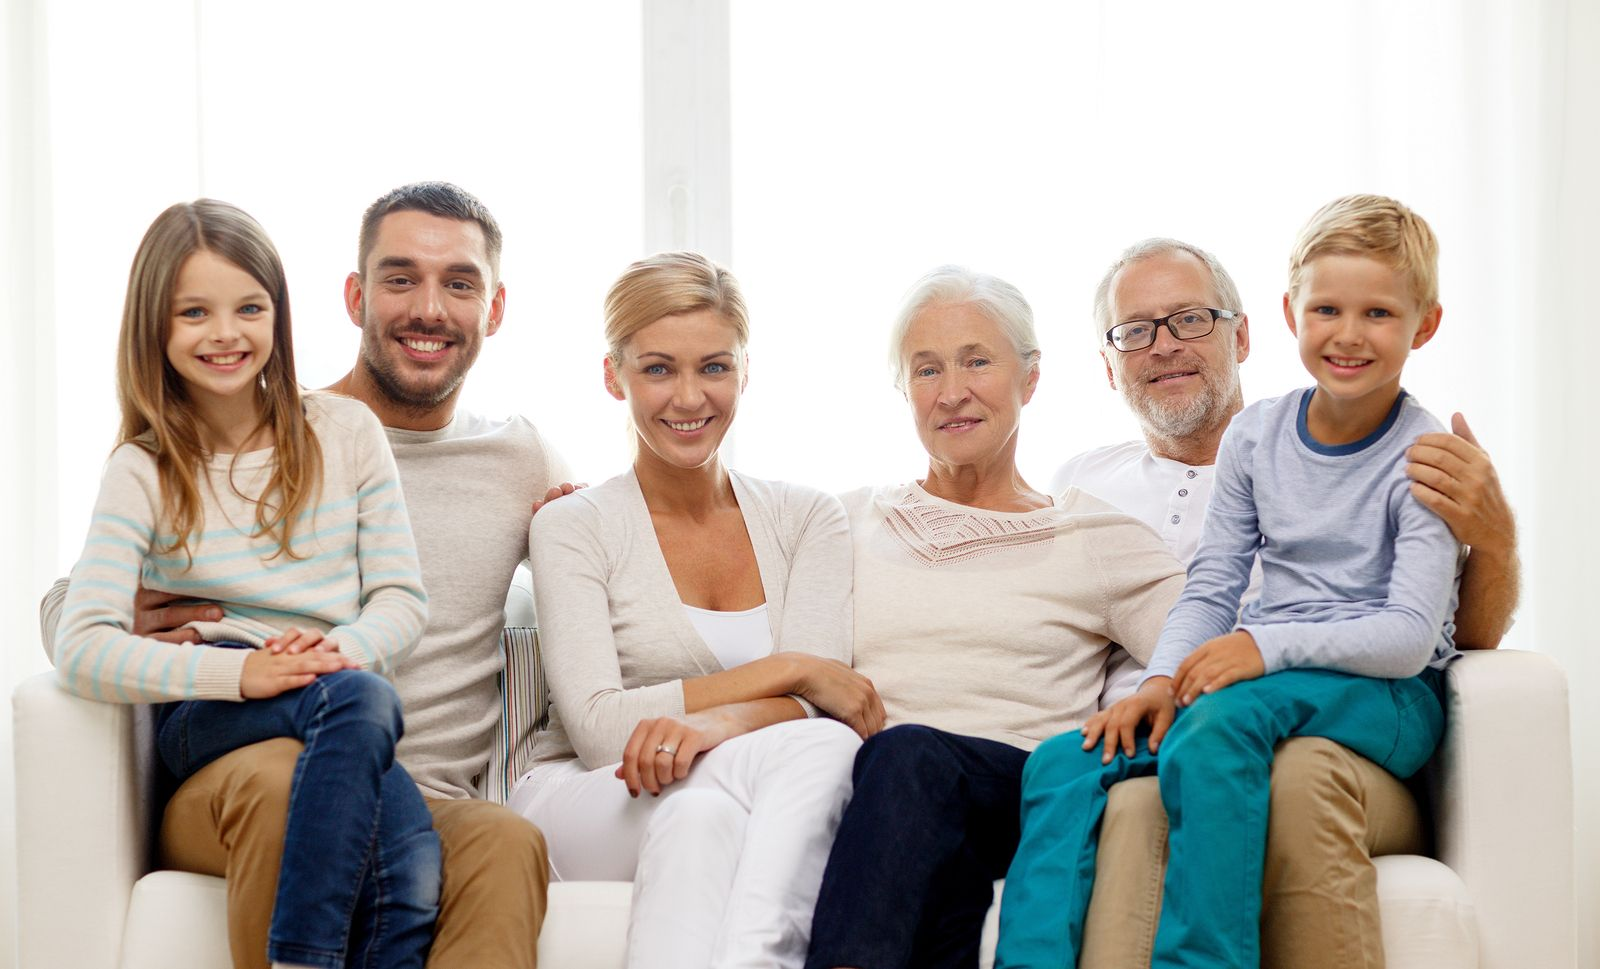 To handle elder care issues and meet home care needs of